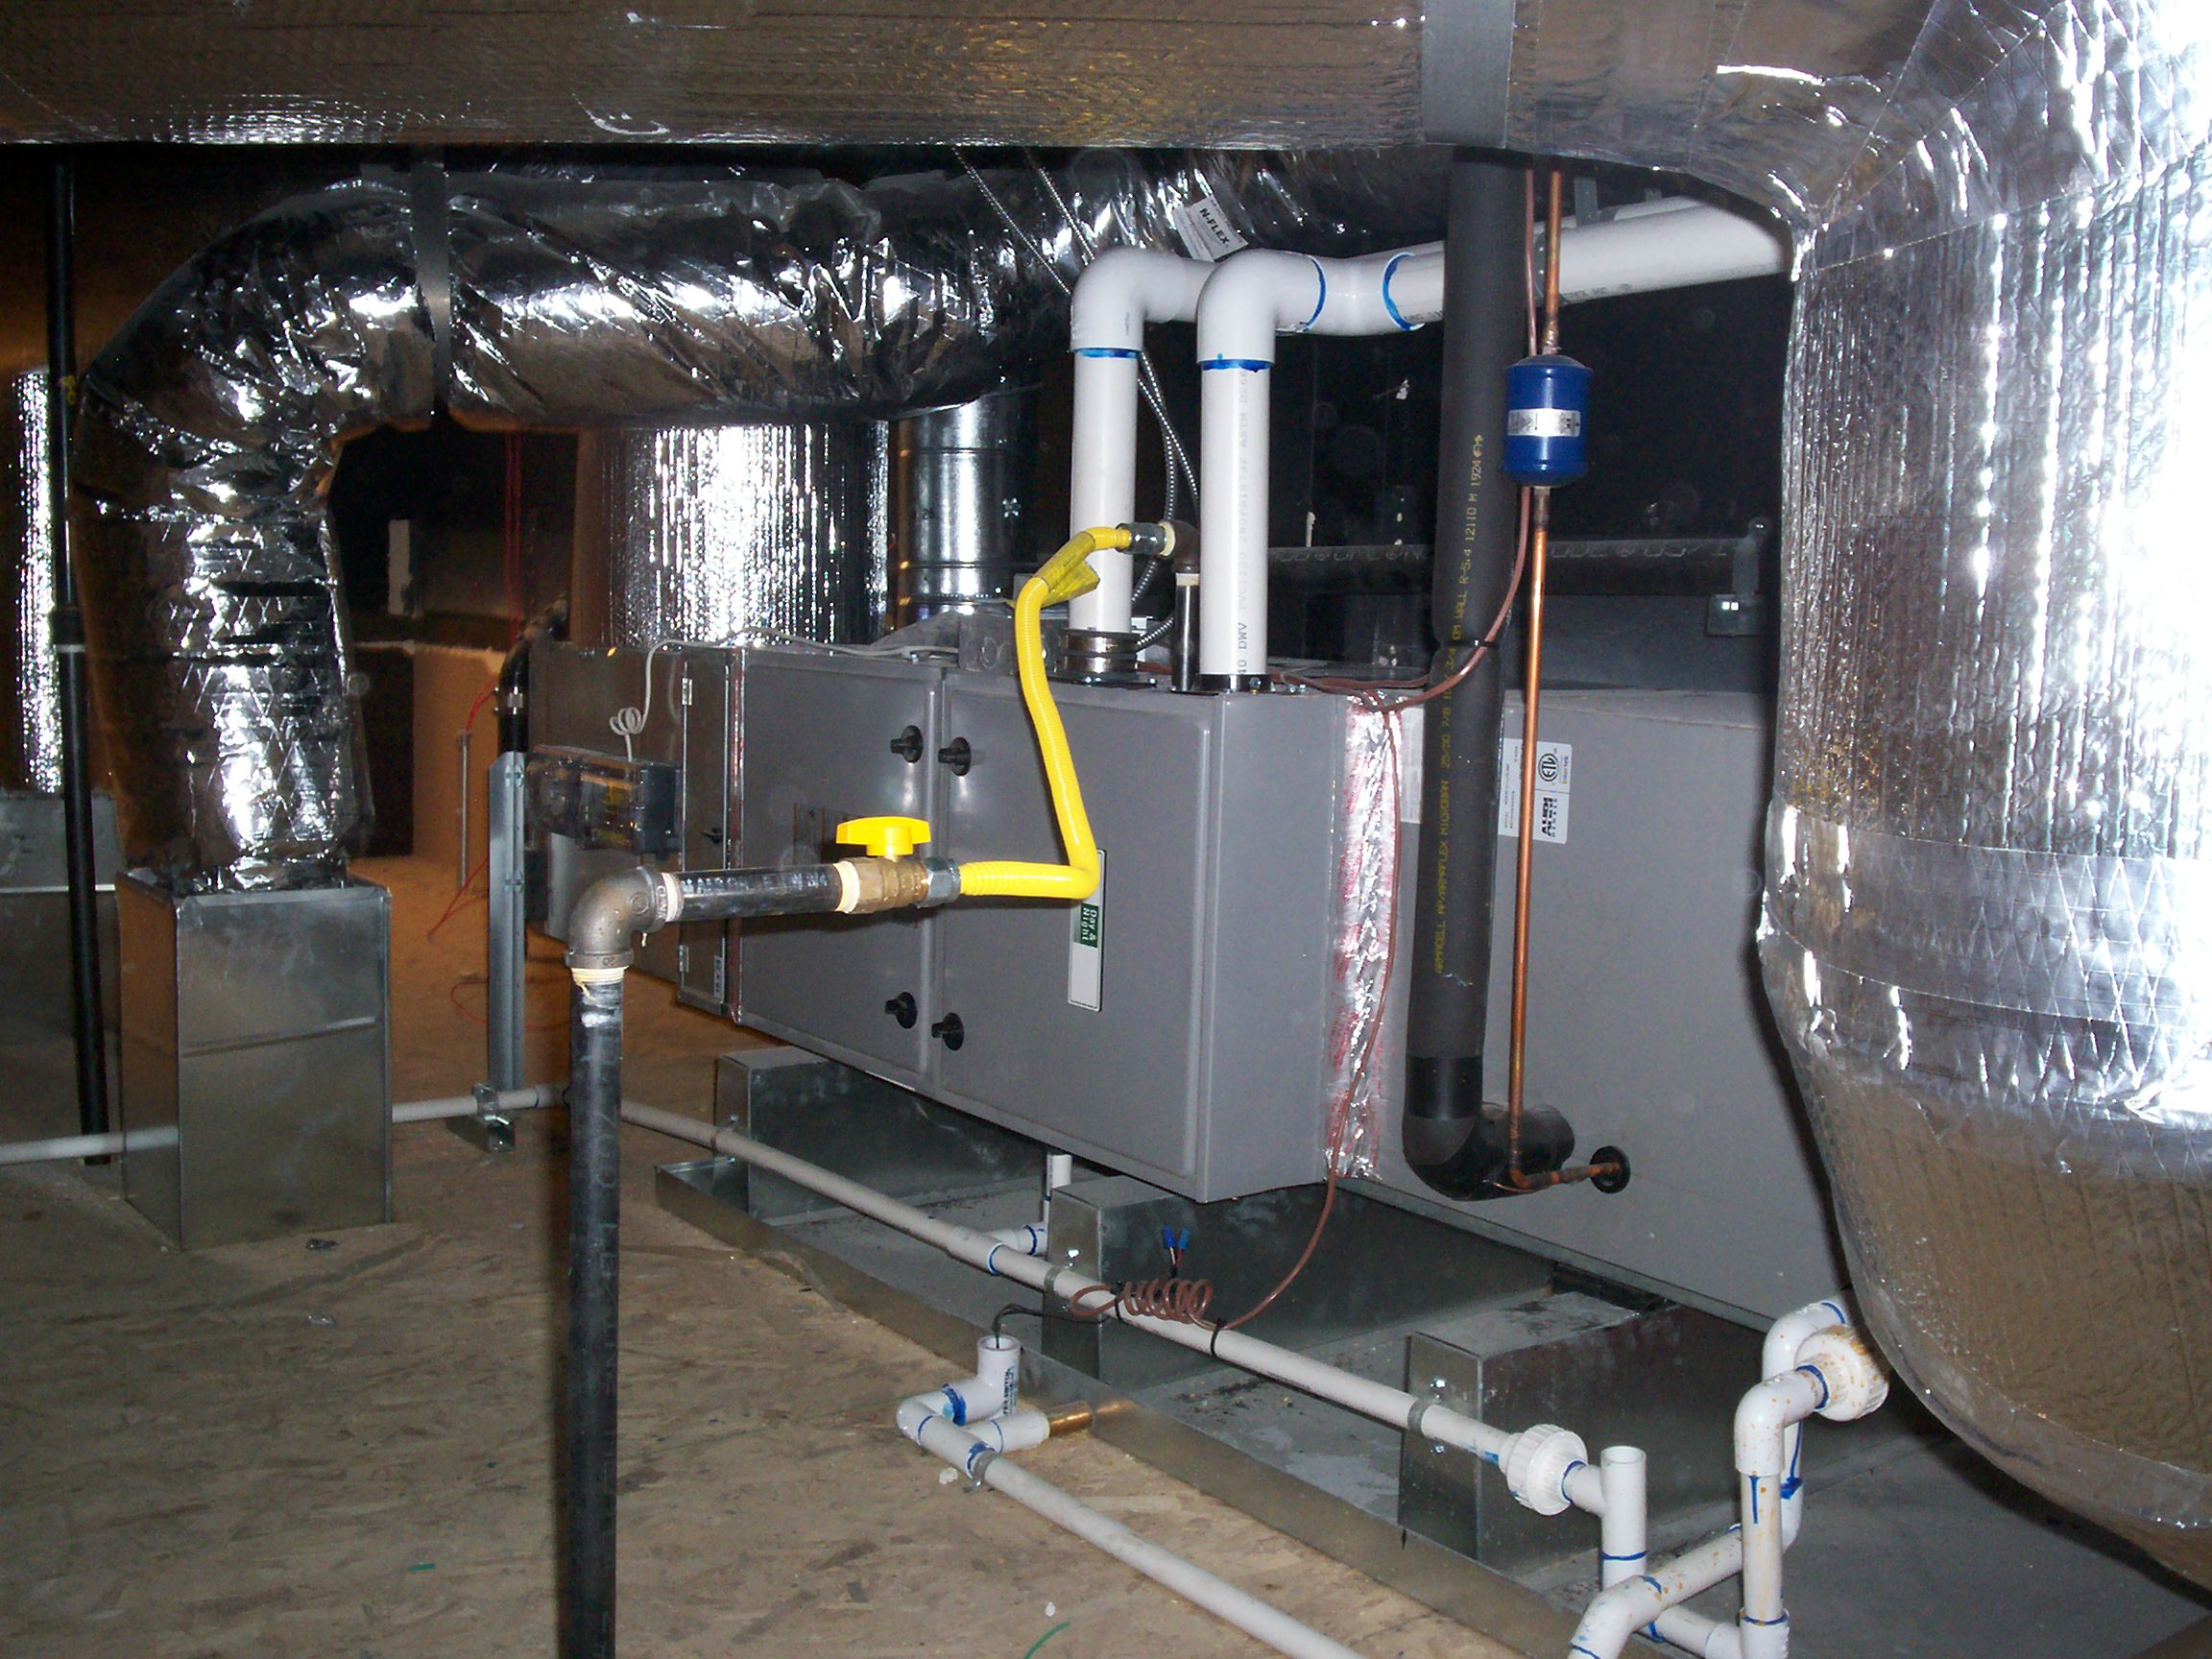 residential heating, air condtioning repairs & installation